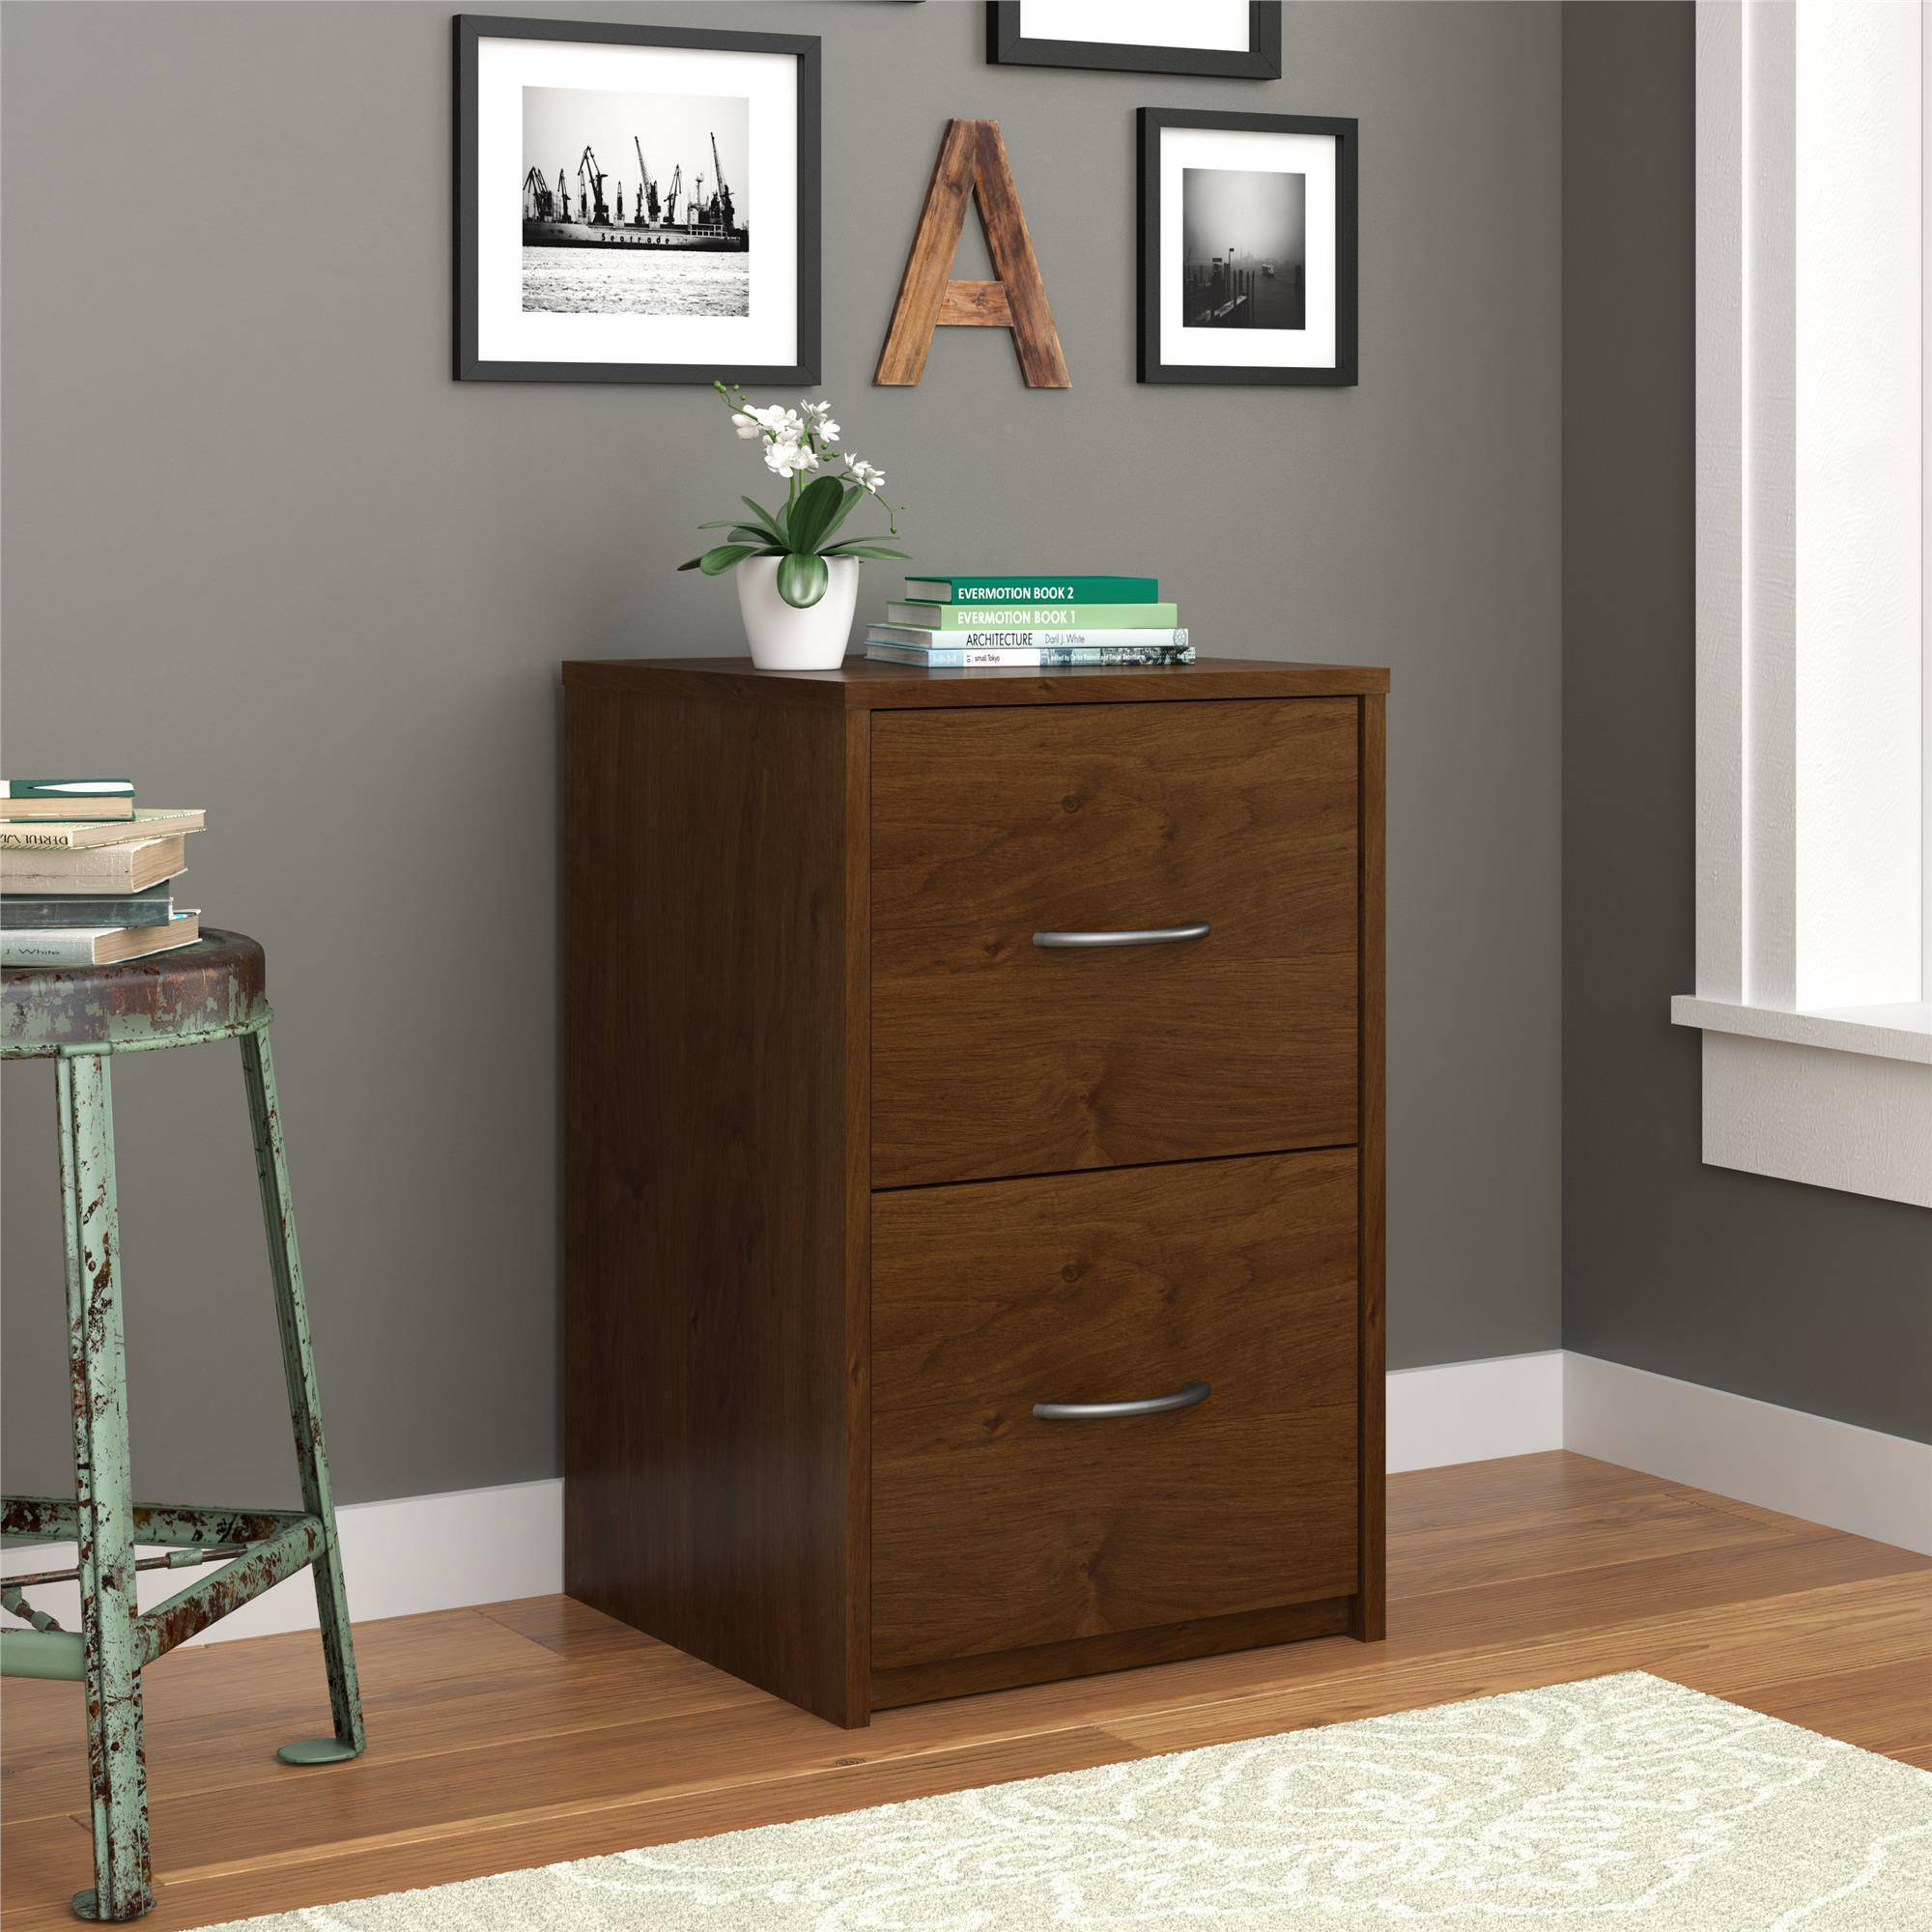 wooden for merlot in hon cozy decor walnutcozy vertical lateral file to home watkins drawer furniture cabinet wood glen solid complete apply cabinets filing